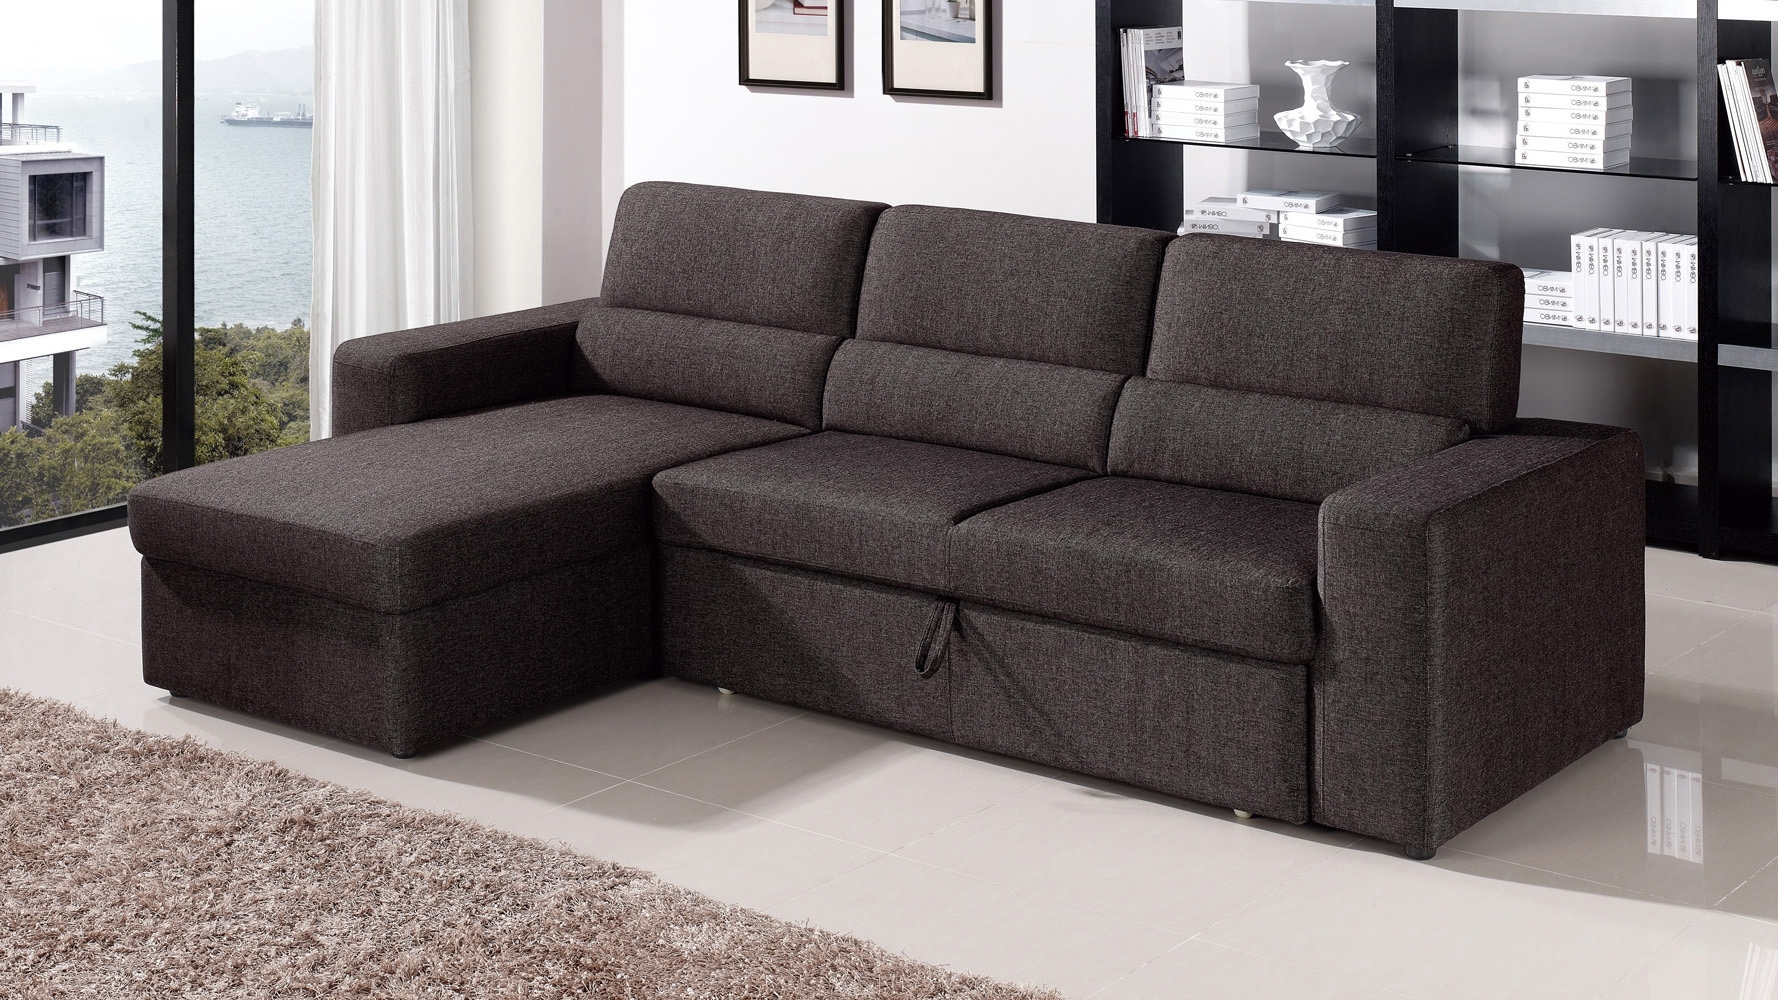 Black/brown Clubber Sleeper Sectional Sofa | Zuri Furniture Throughout Black Sectional Sofas (Image 6 of 10)